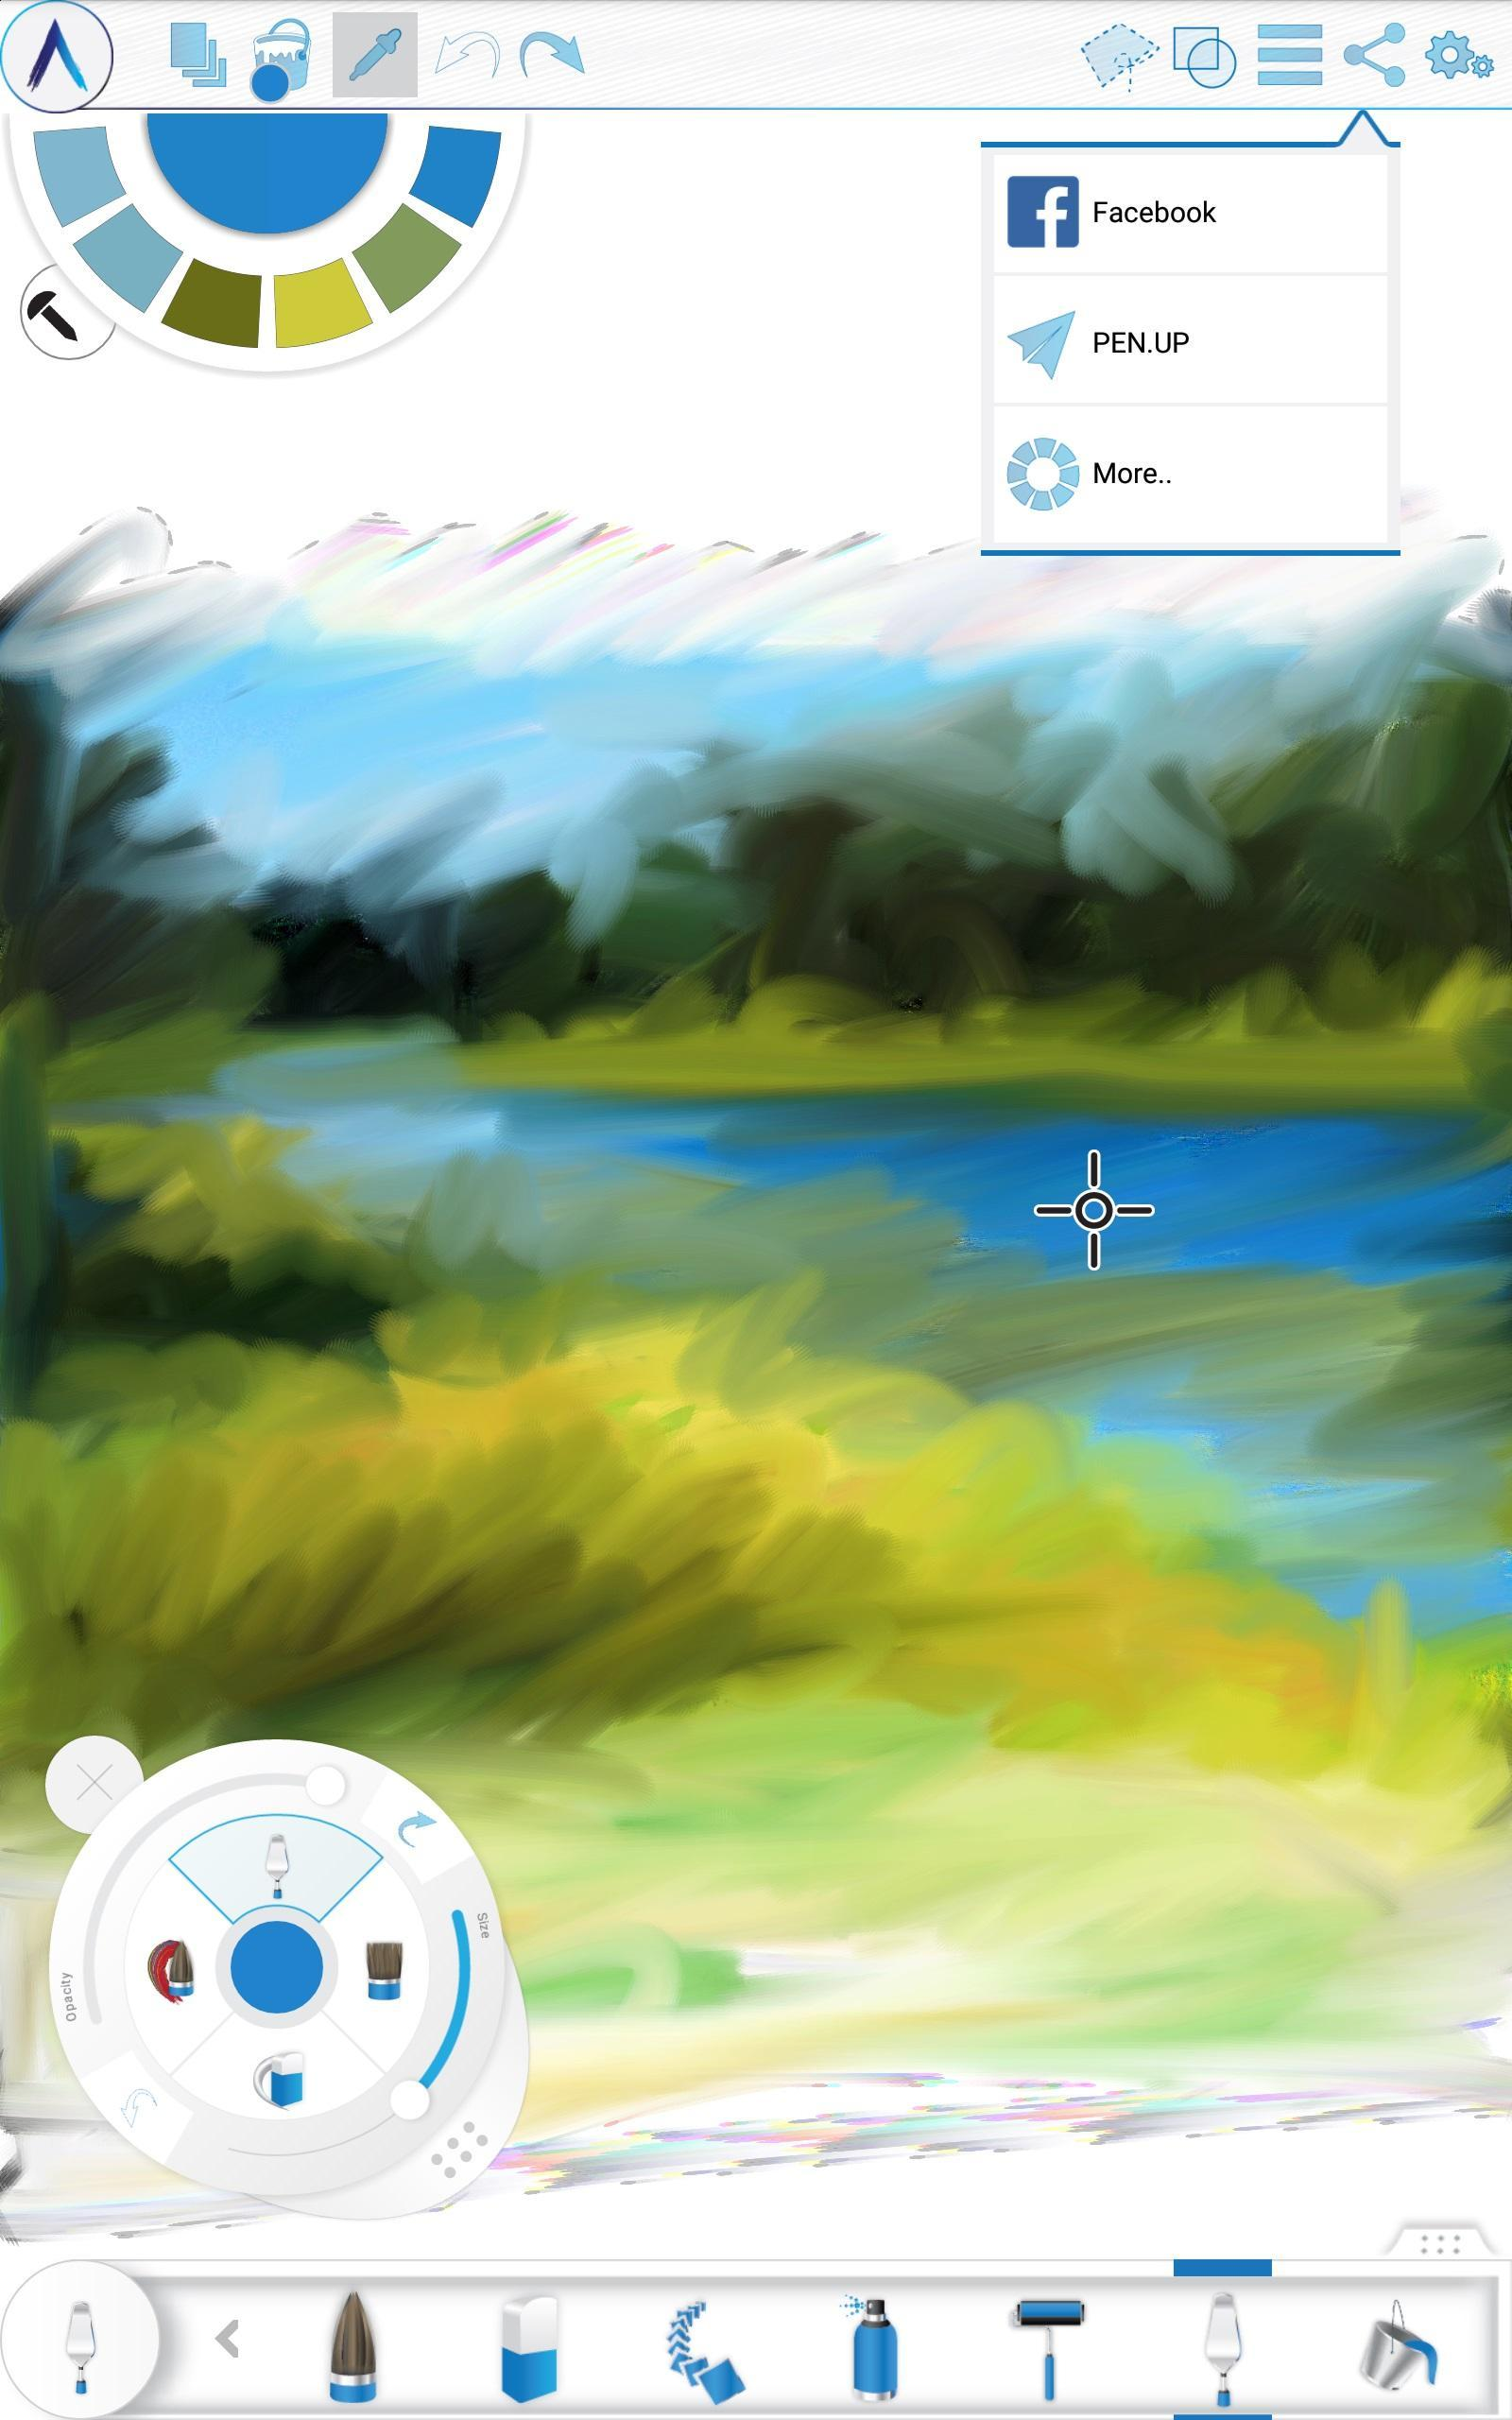 Artecture Draw, Sketch, Paint 5.2.0.4 Screenshot 19